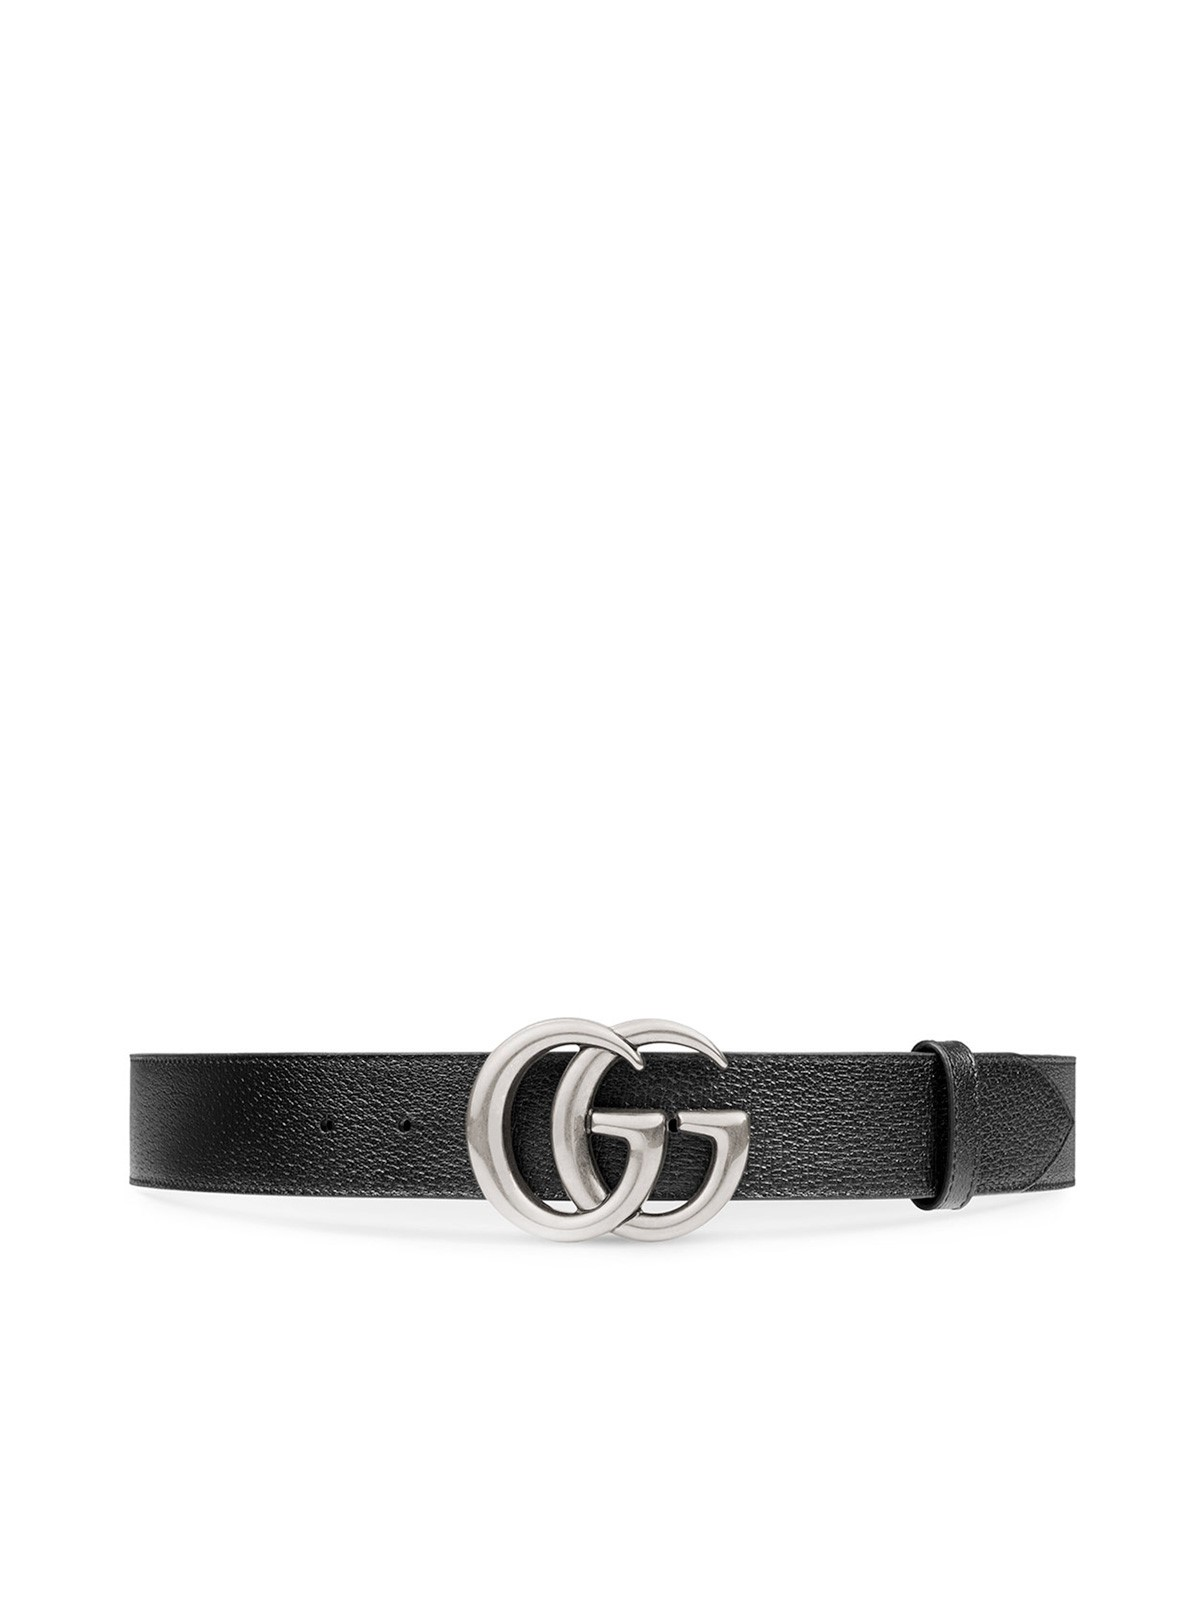 9fbd7d9efe63 gucci GG BUCKLE BELT available on montiboutique.com - 22744